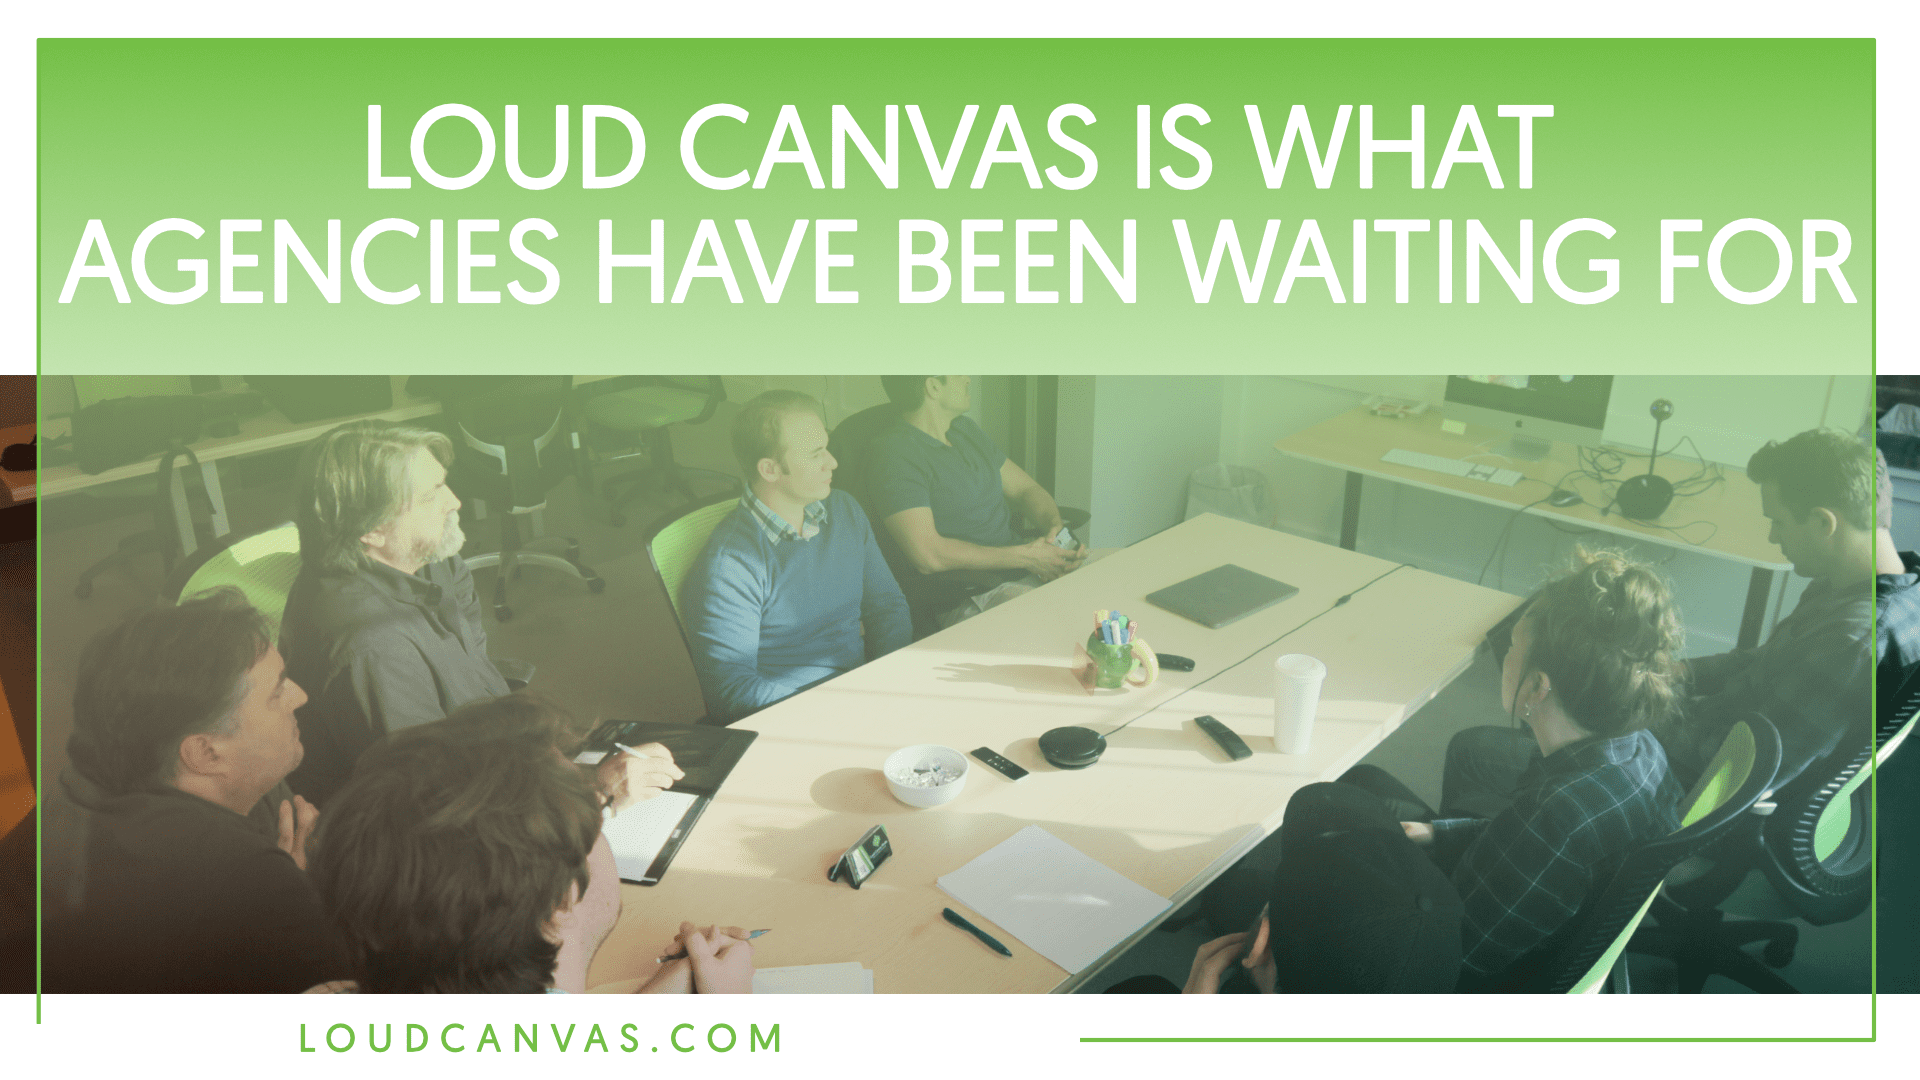 Loud Canvas is What Agencies Have Been Waiting For